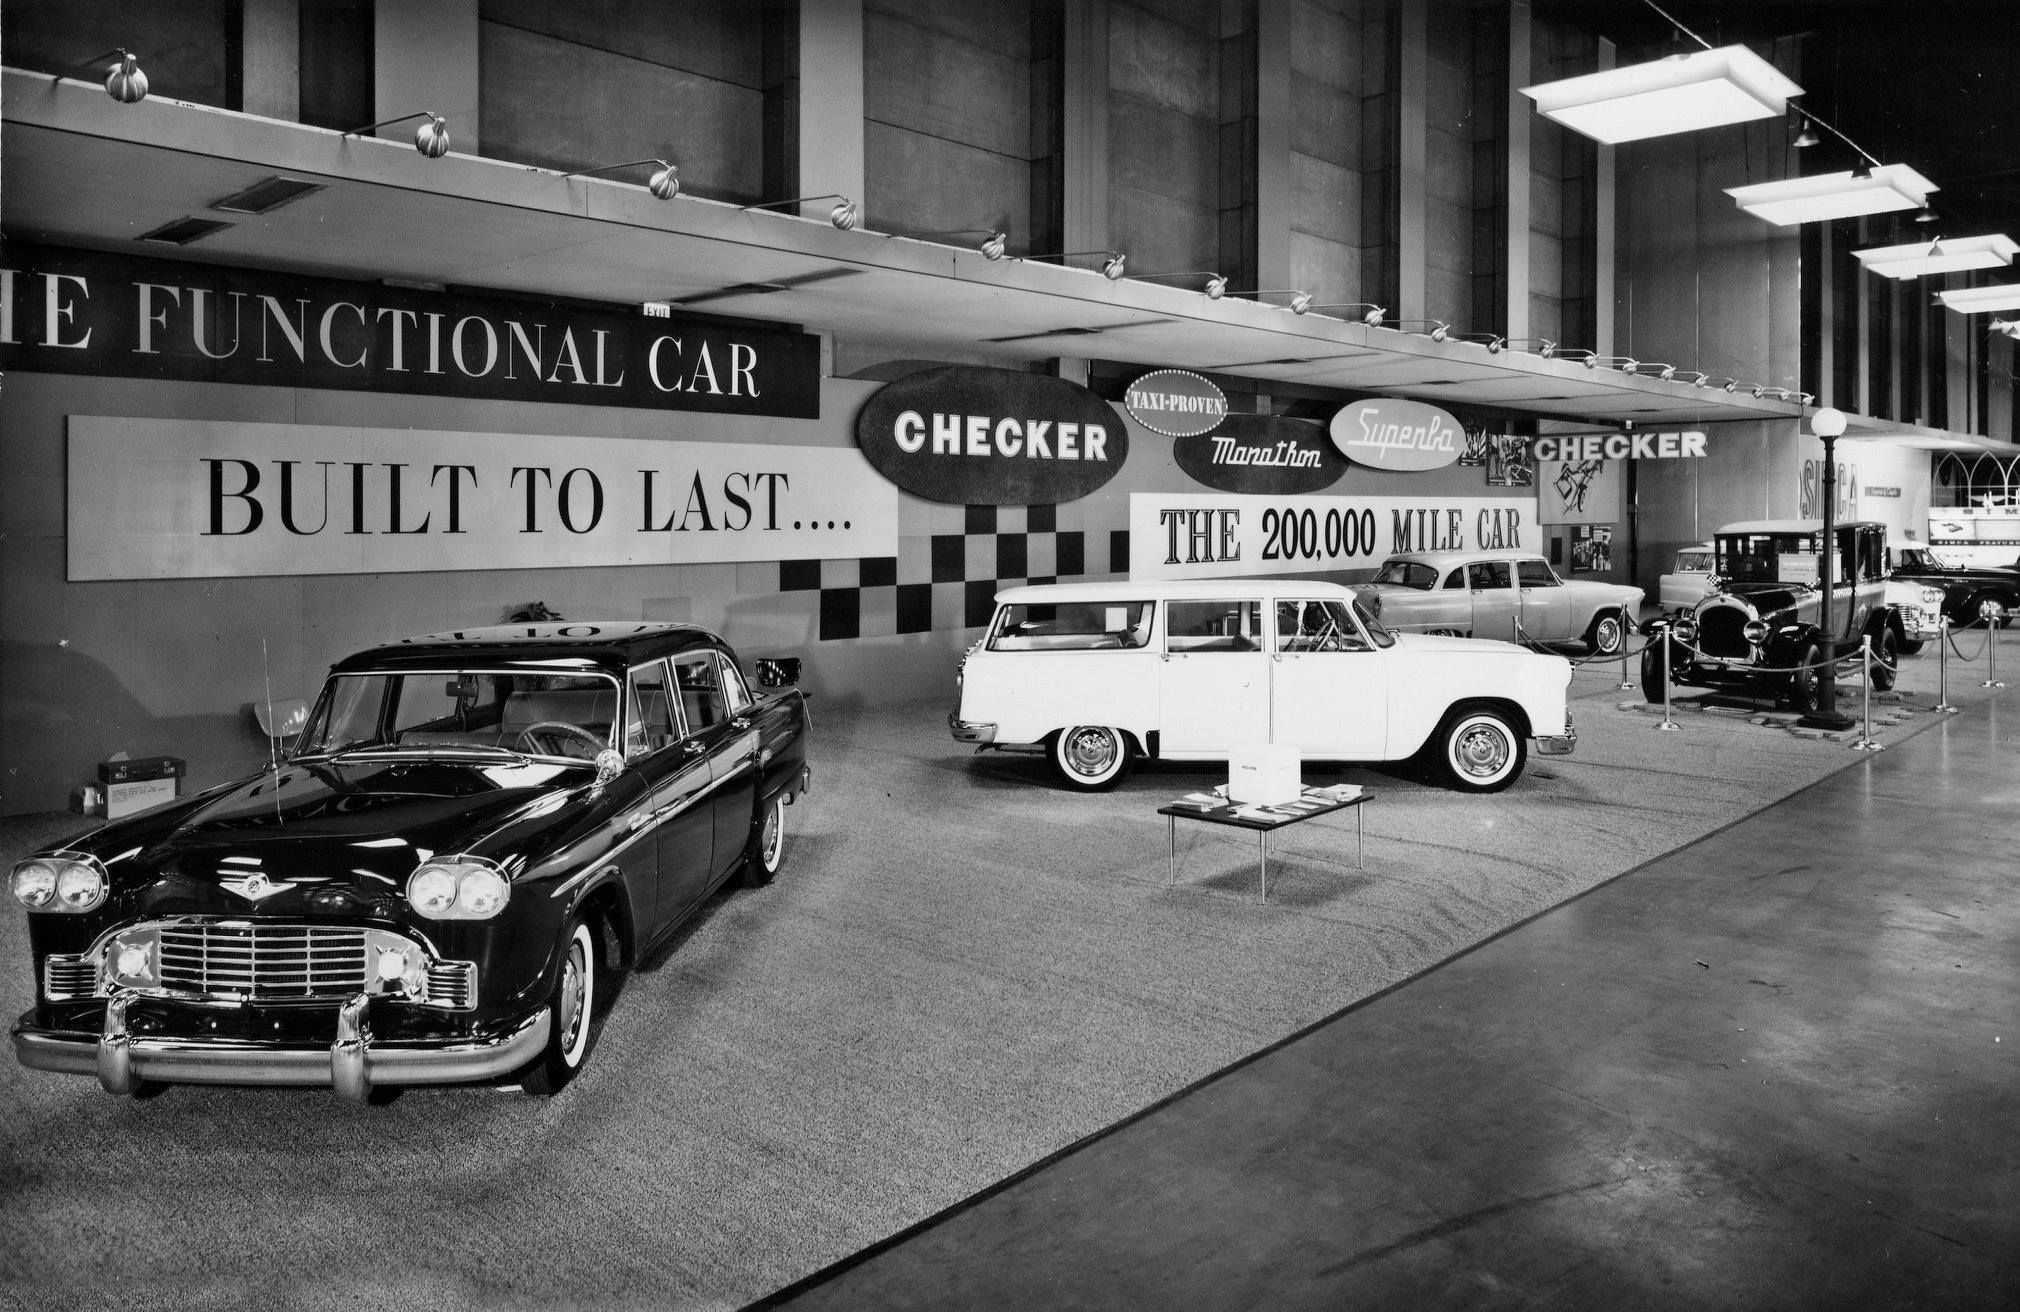 Checker-at-Chicago-Auto-Show-1960-4